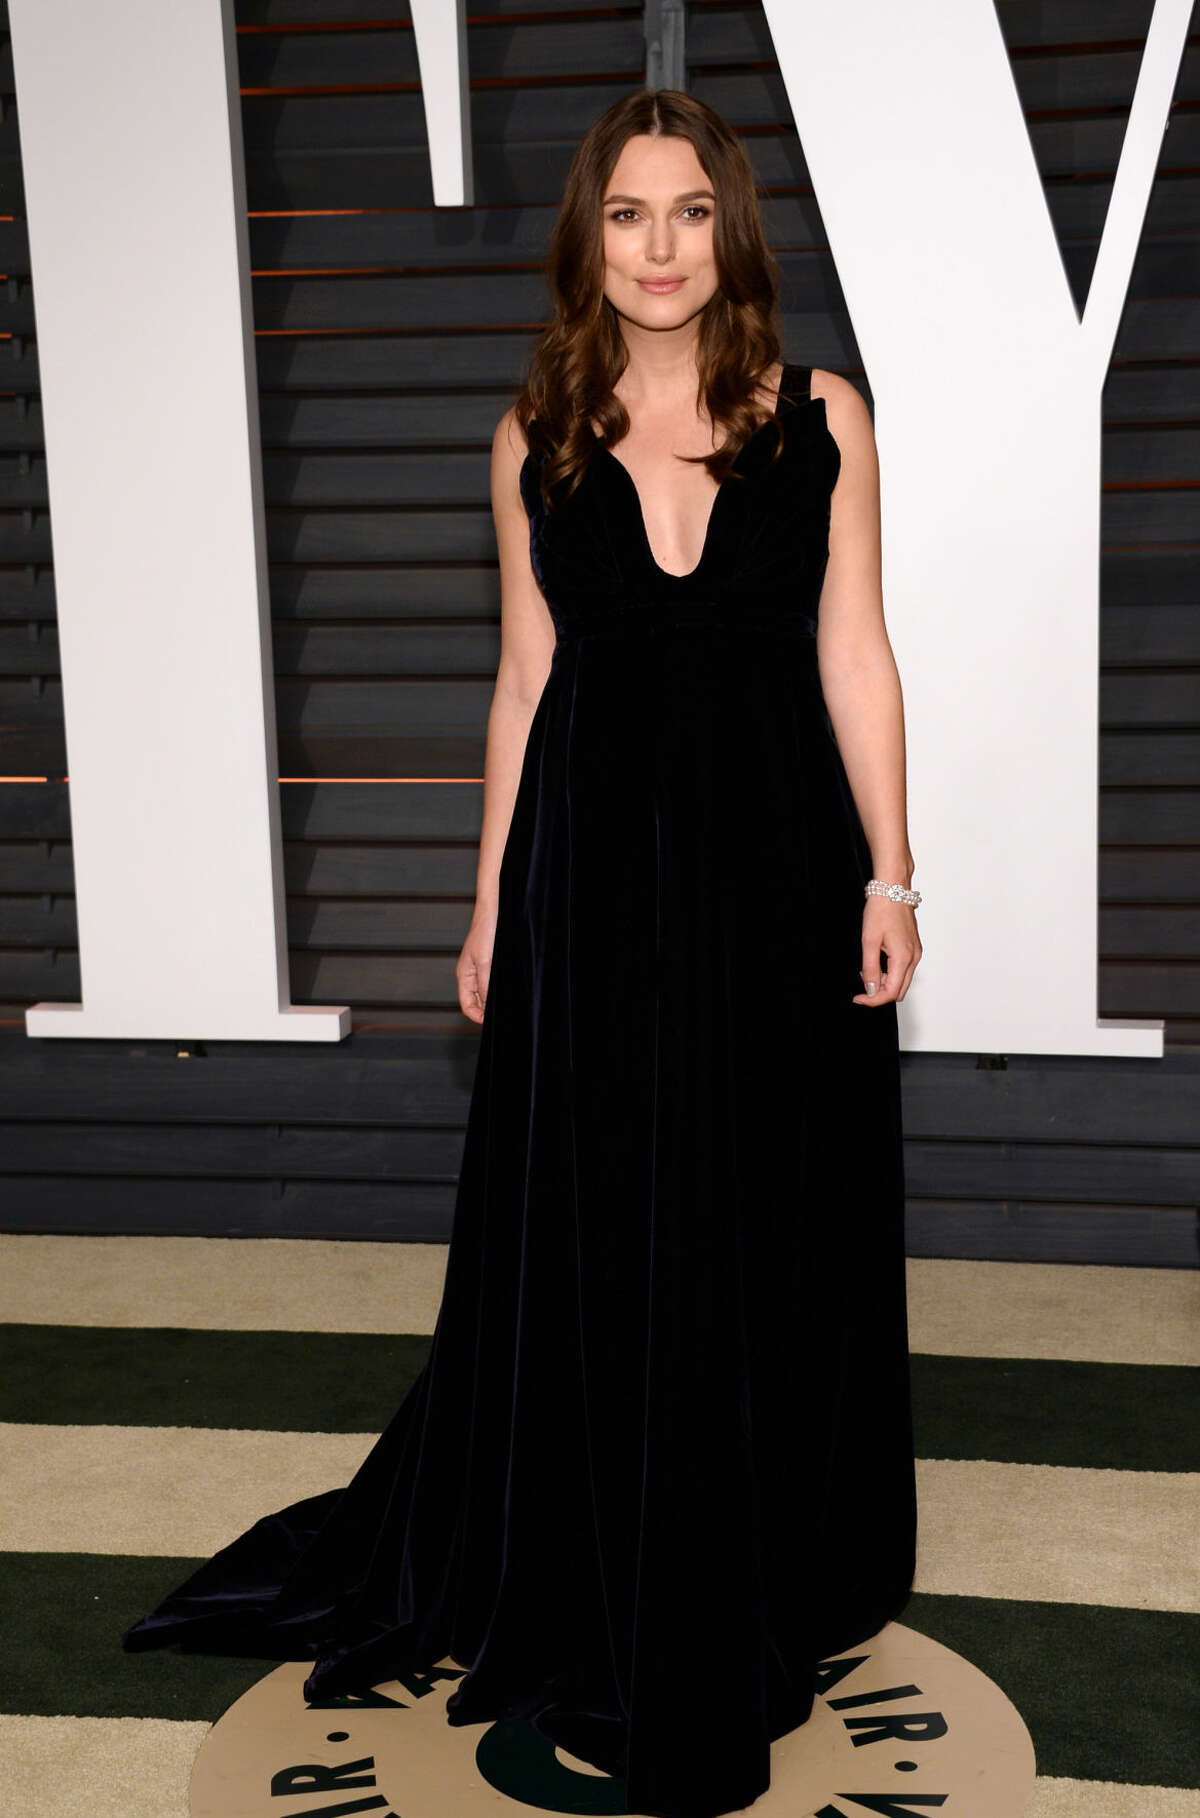 Keira Knightley arrives at the 2015 Vanity Fair Oscar Party on Sunday, Feb. 22, 2015, in Beverly Hills, Calif. (Photo by Evan Agostini/Invision/AP)